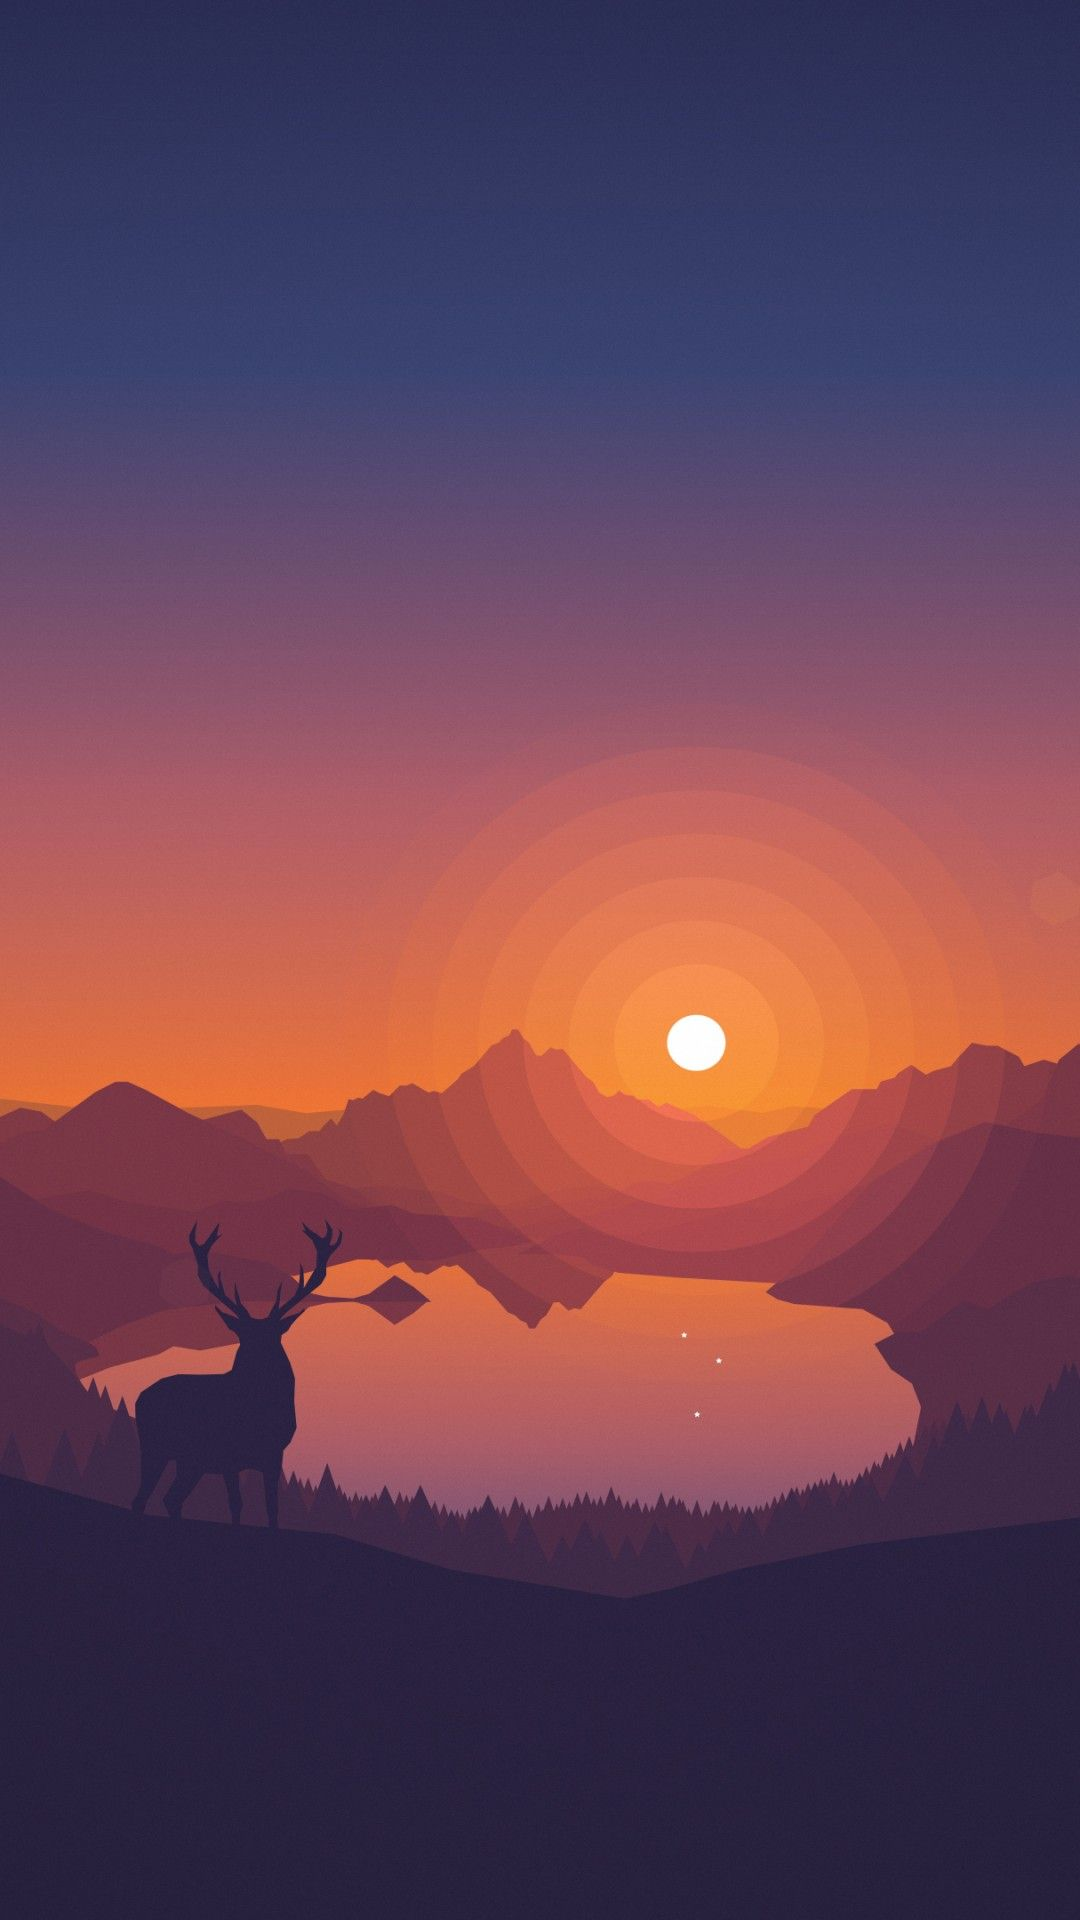 Misc Lakeview Sunset 4k Wallpapers Minimalist Wallpaper Red Dead Redemption Art Deer Wallpaper